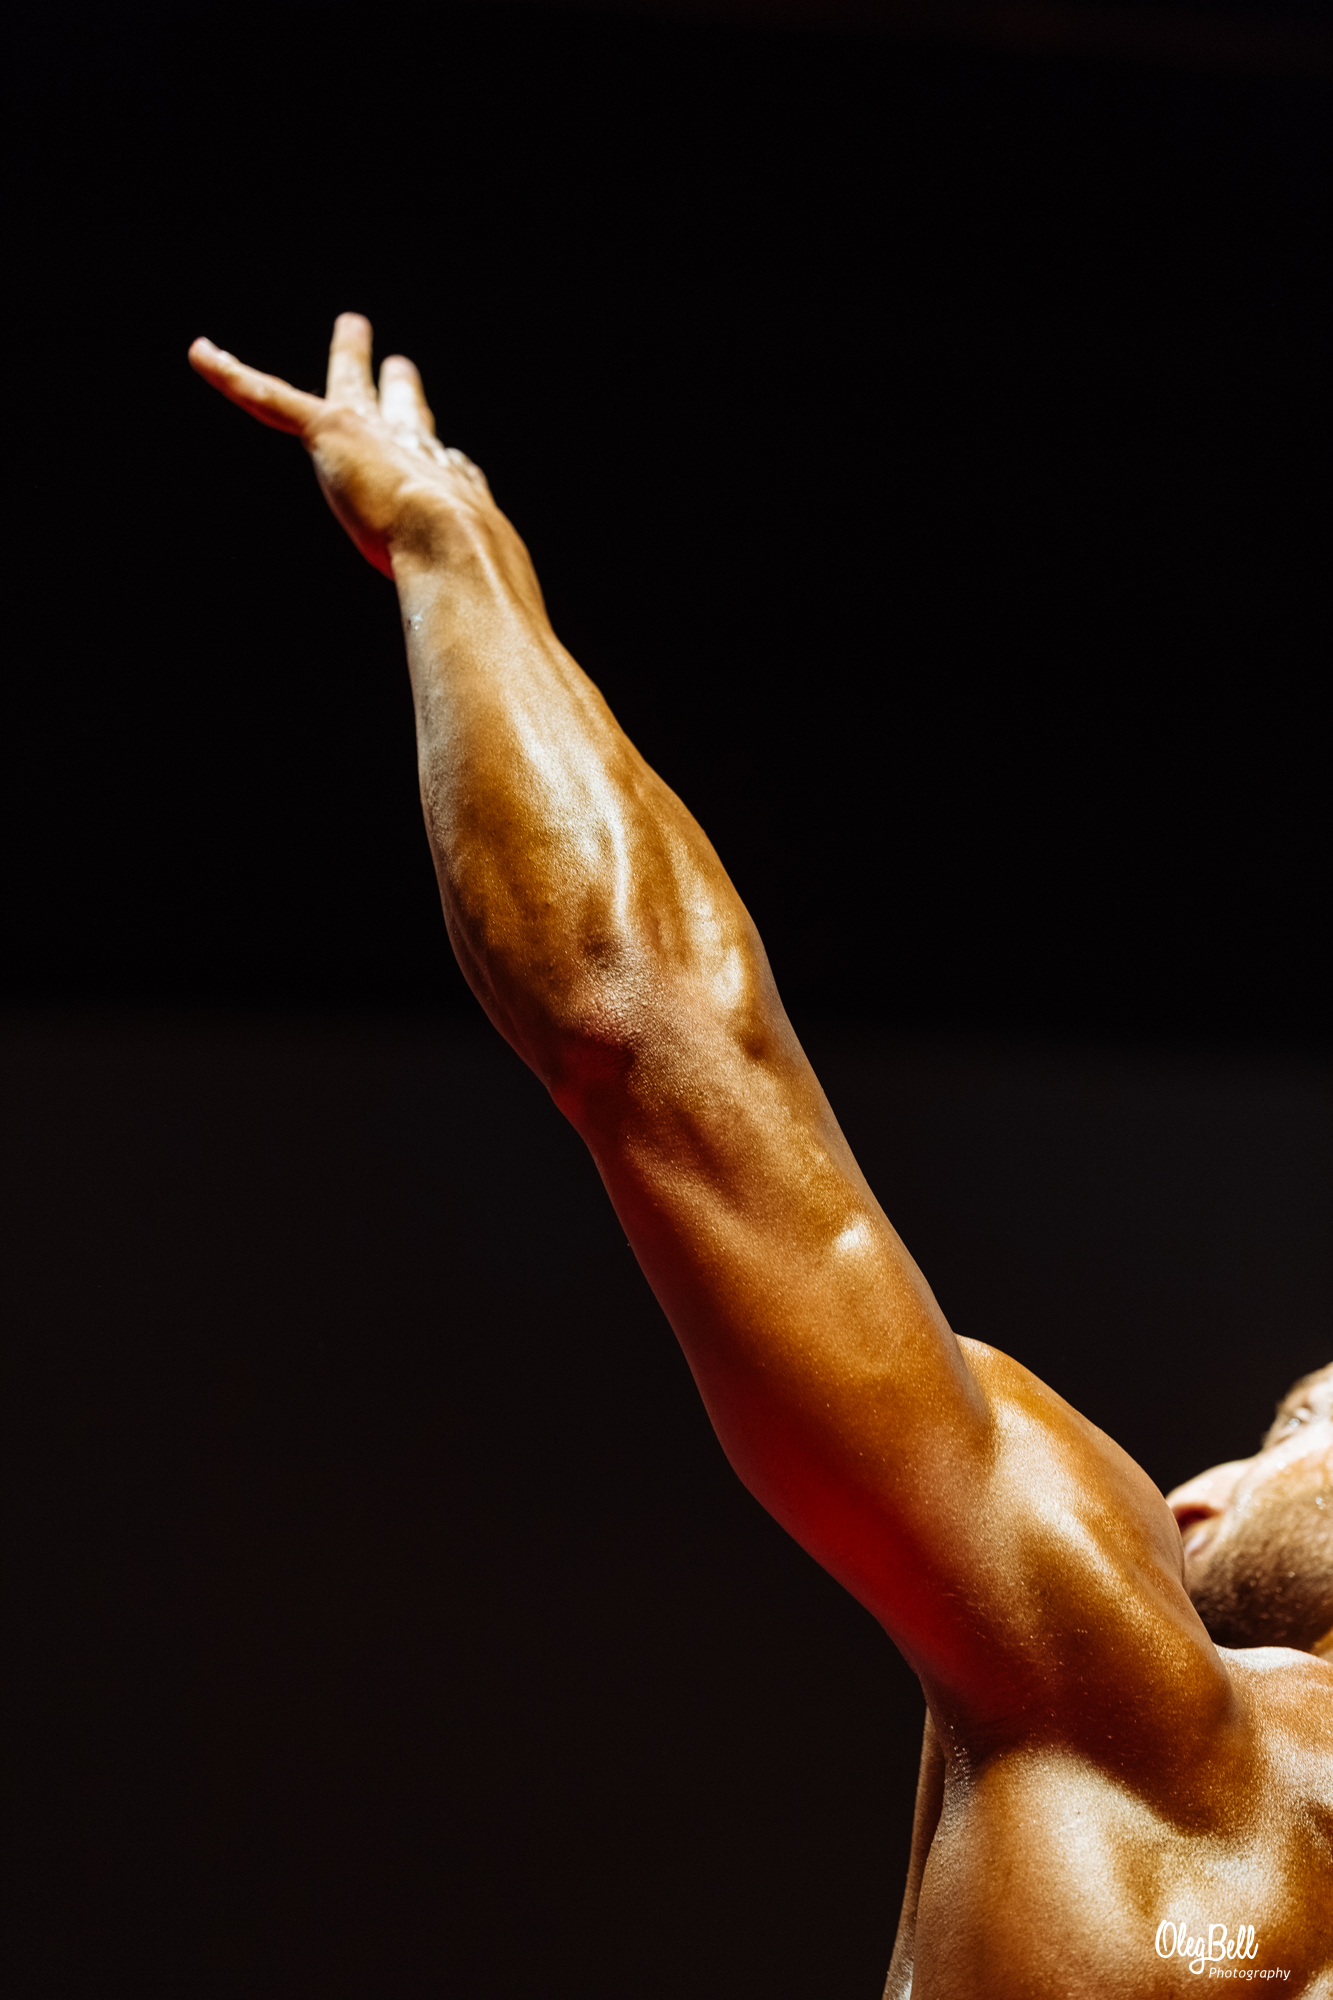 NICOLE_BODYBUILDING_COMPETITIONS_0289.jpg